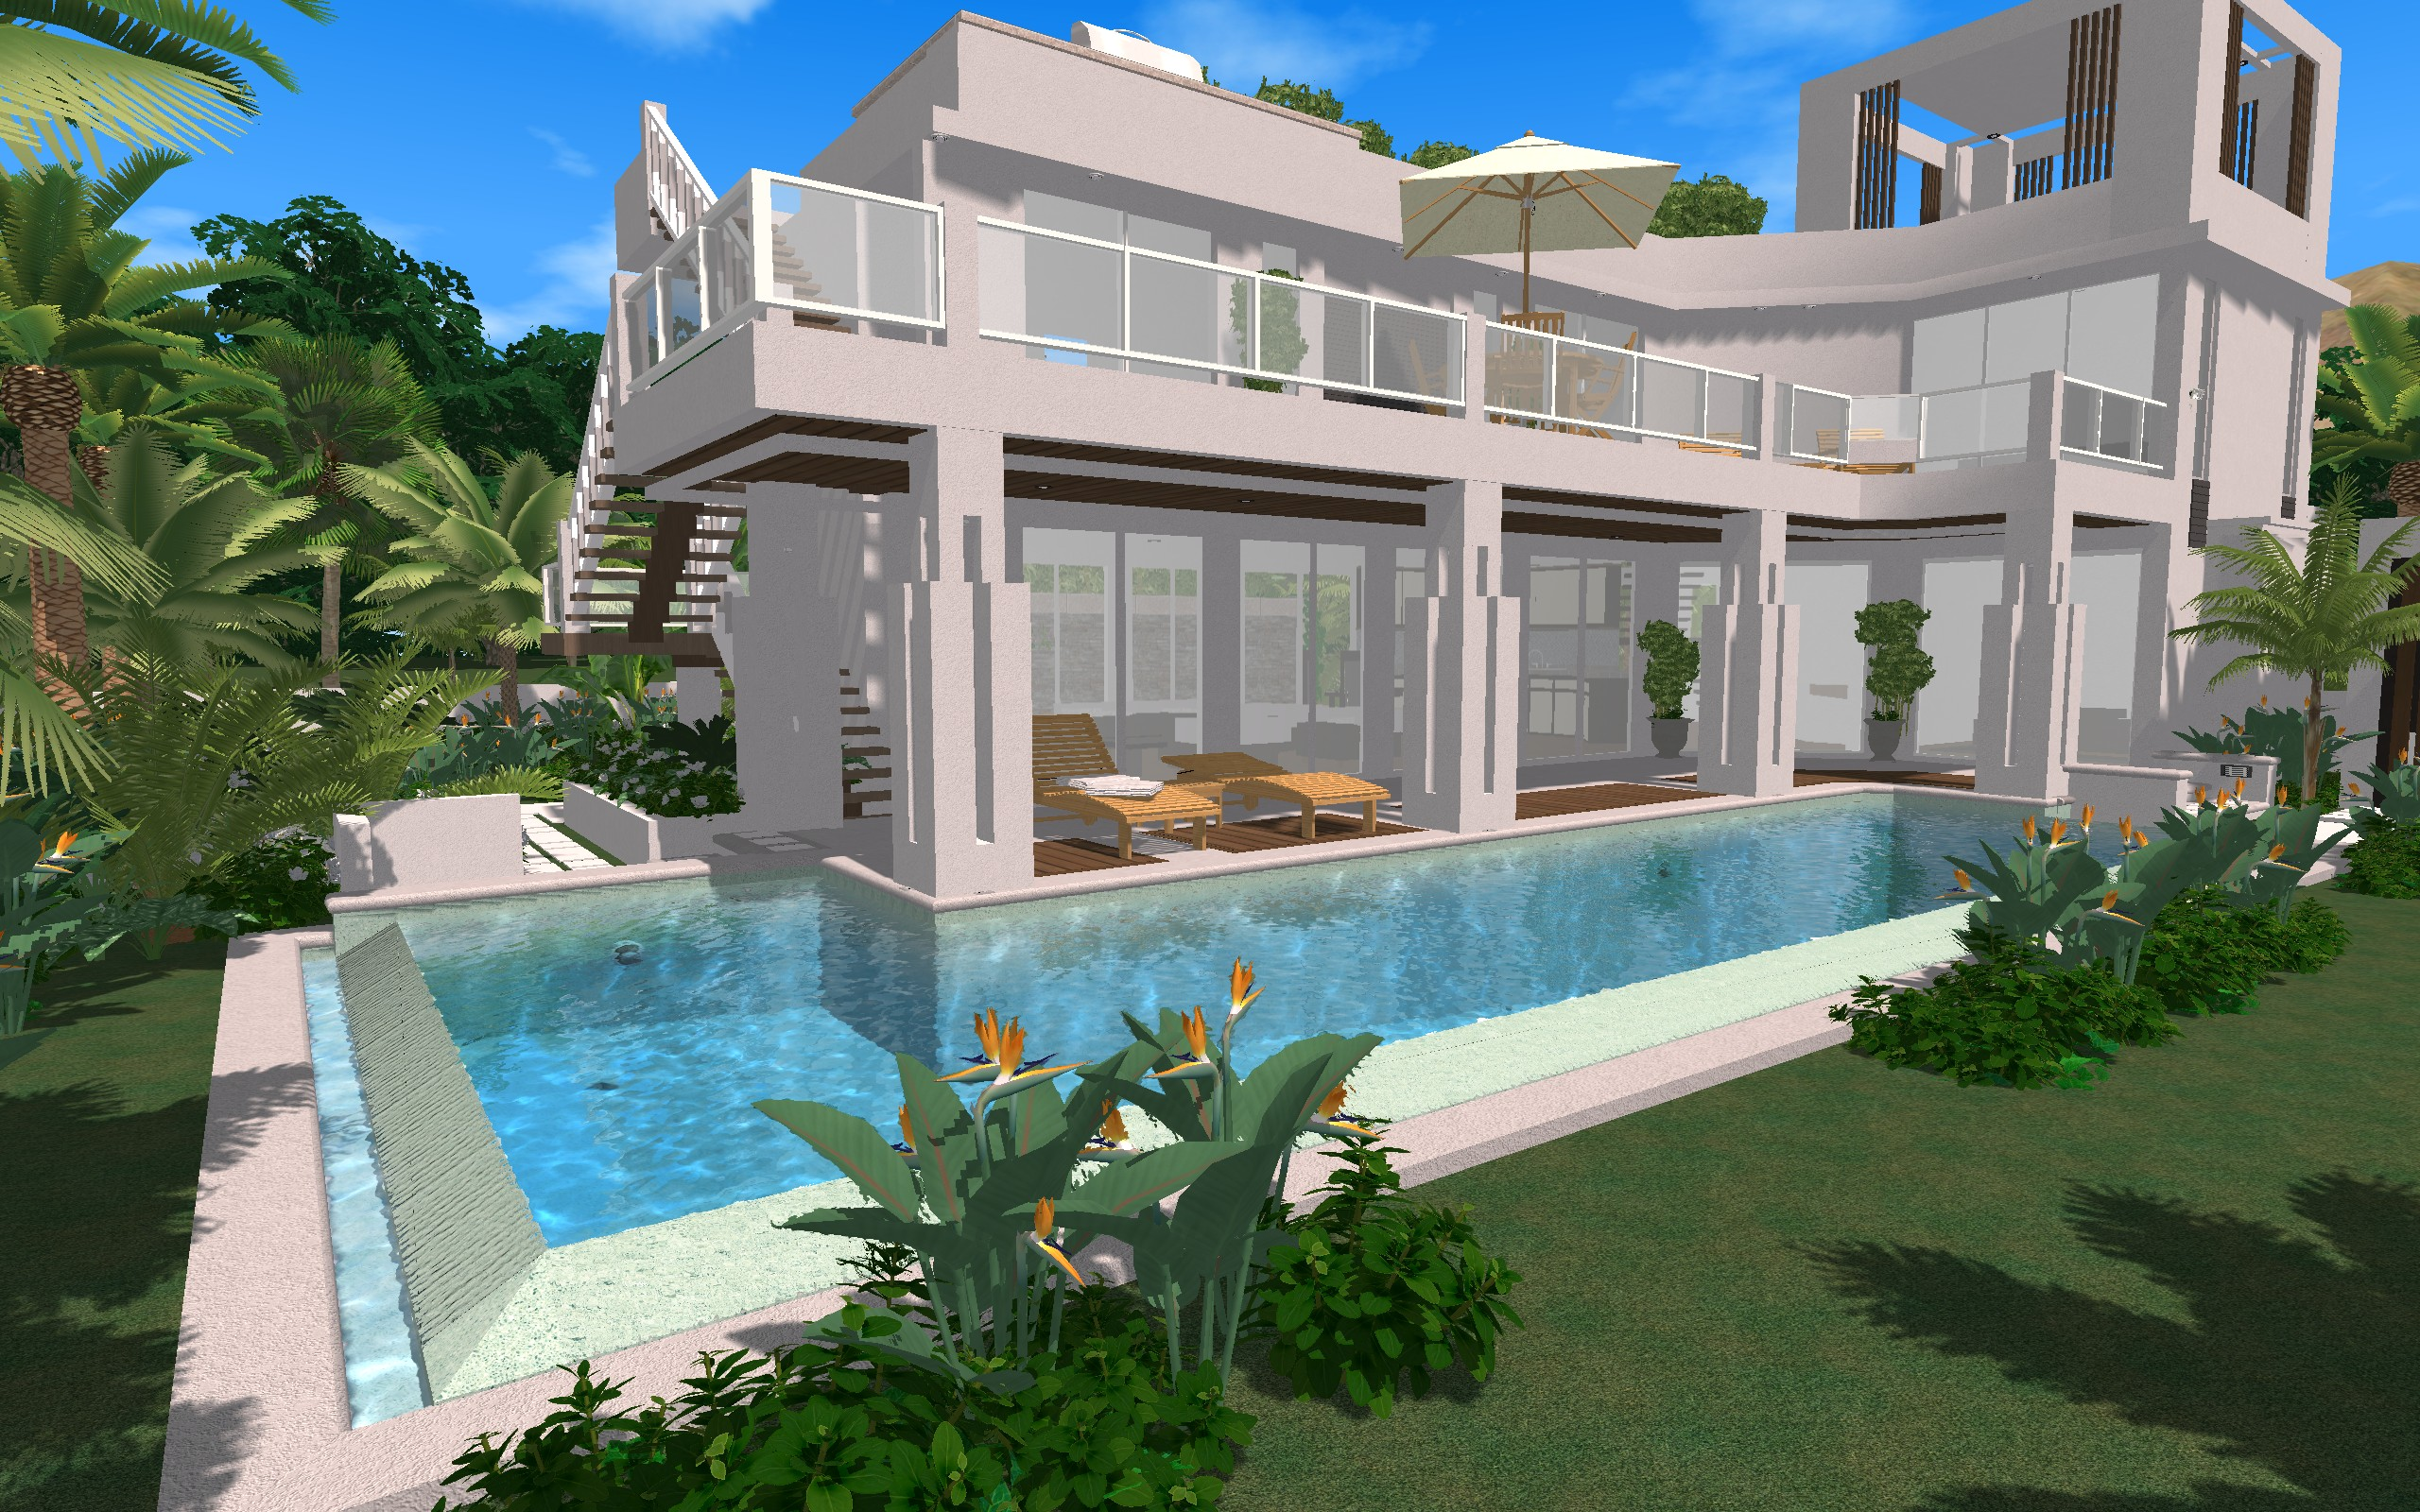 Emejing 3d Pool Design Software Ideas - Decoration Design Ideas ...